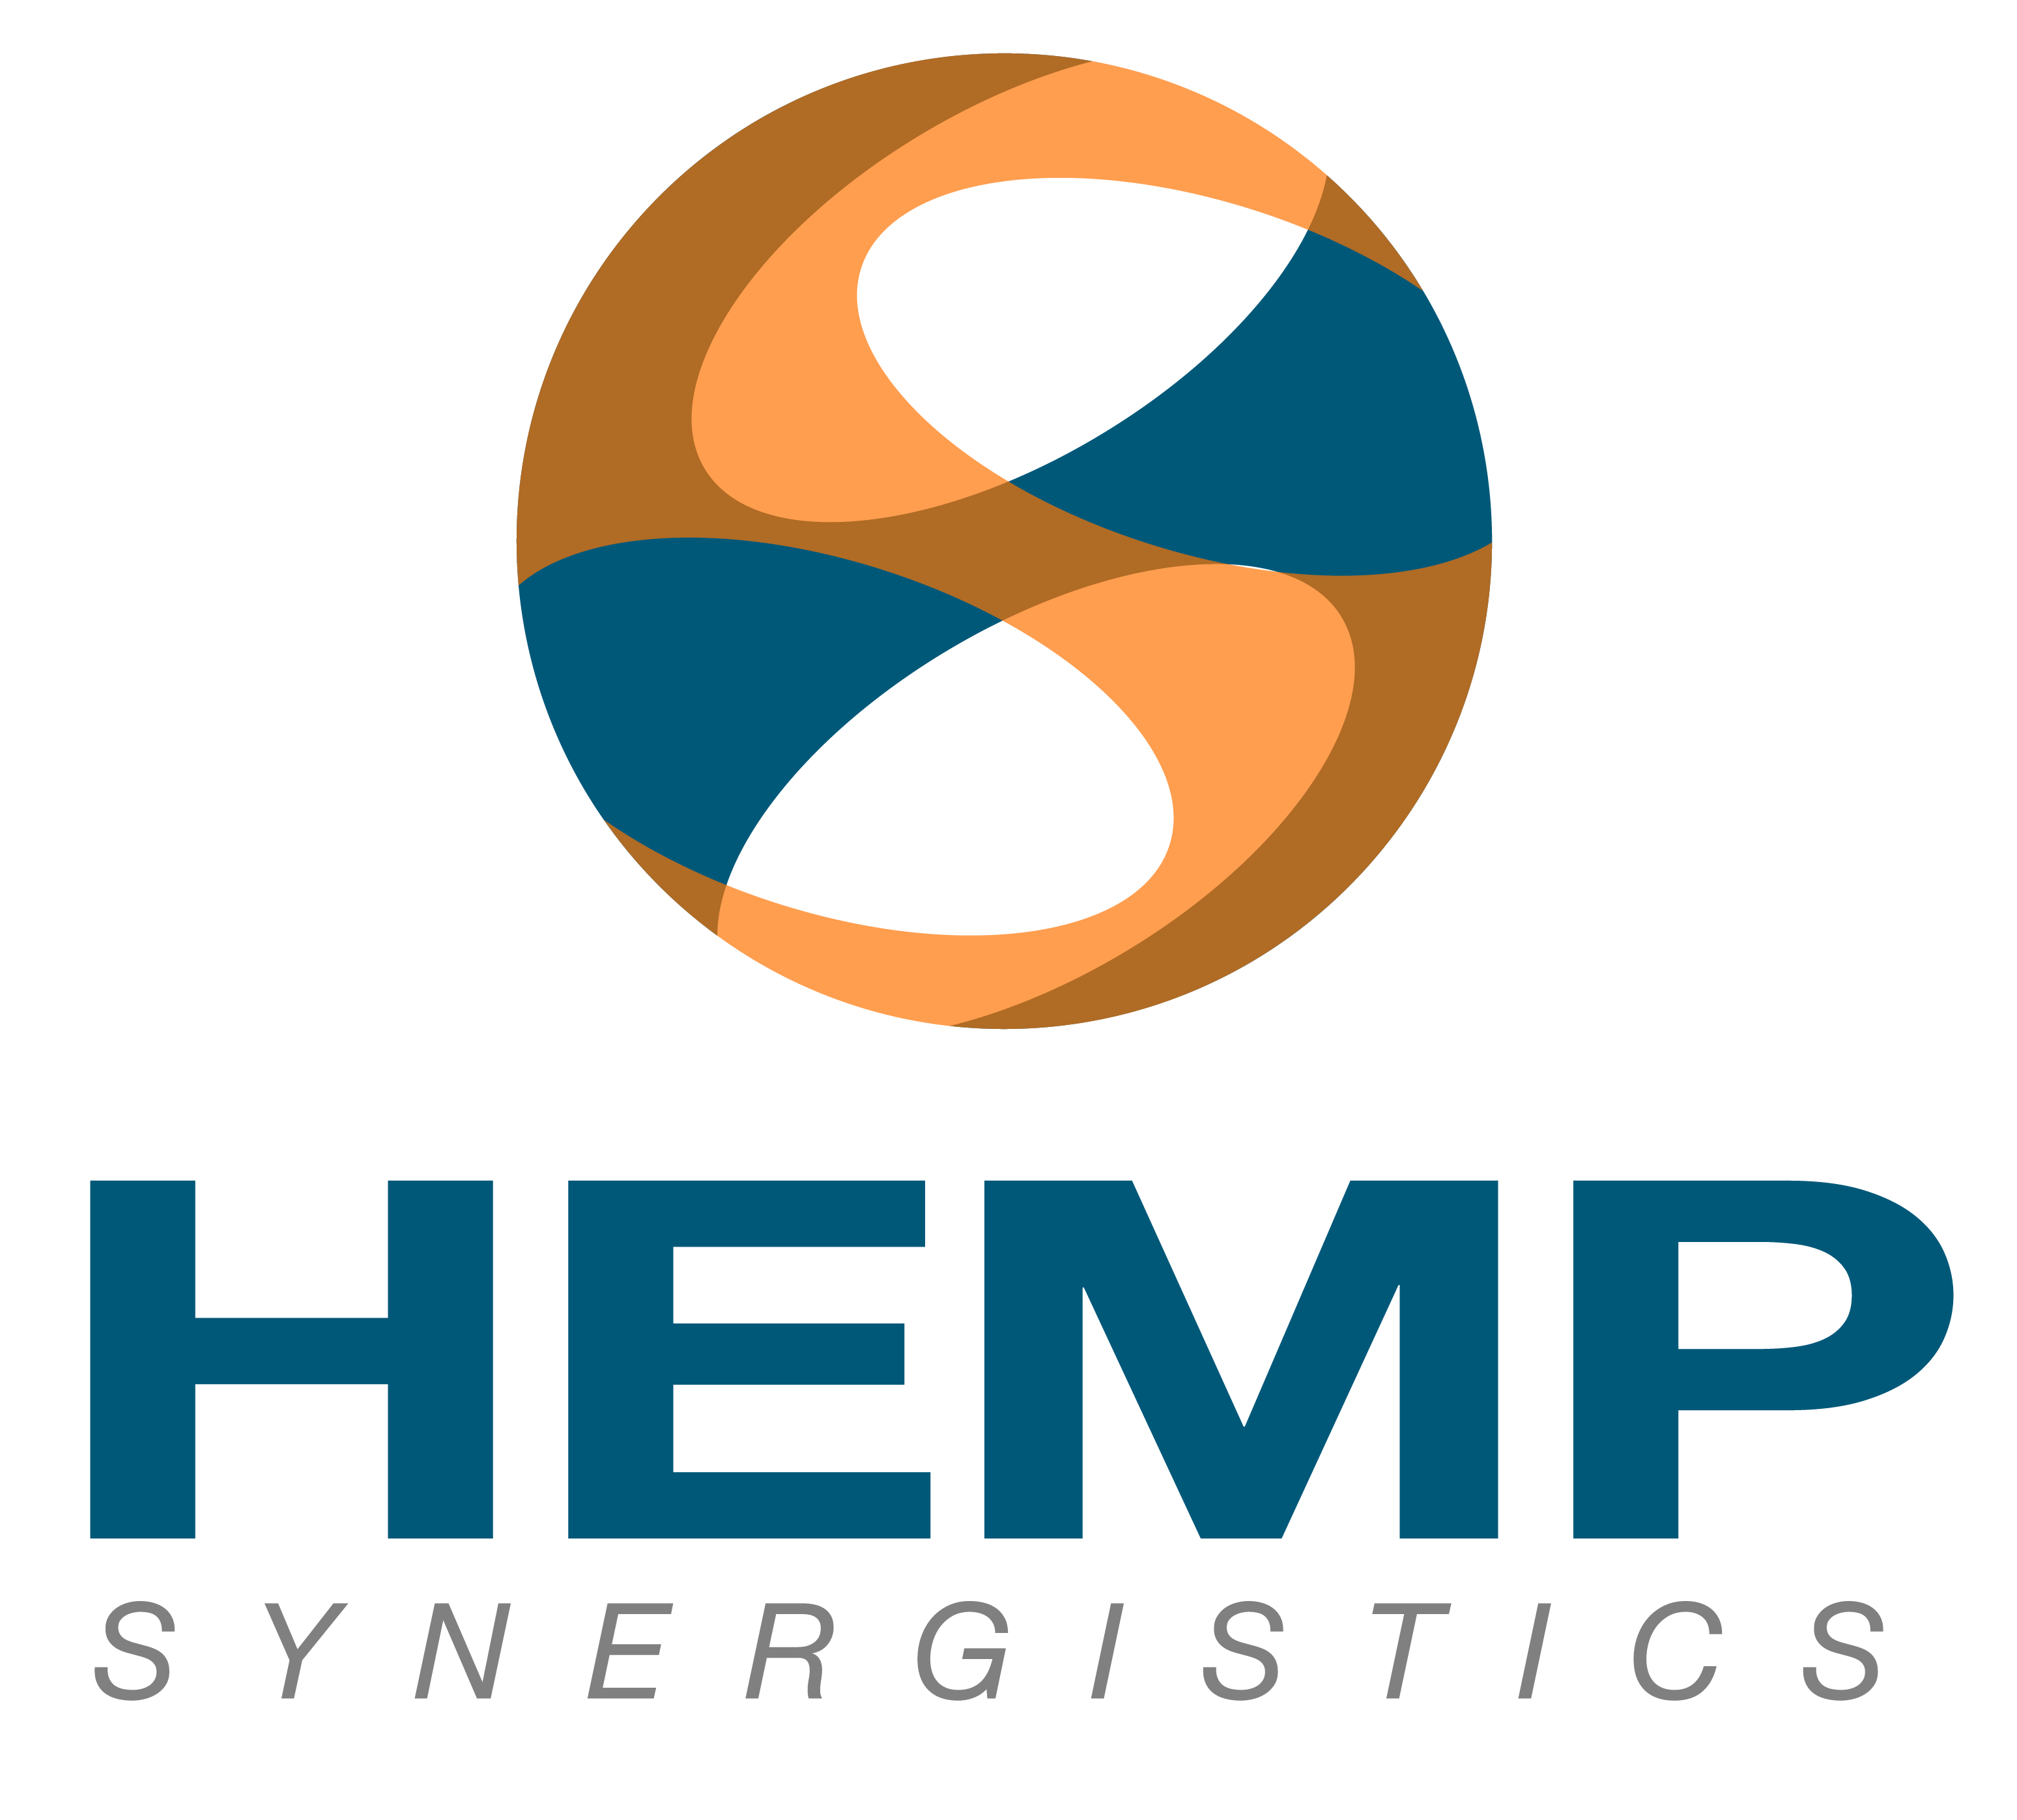 Featured in NutraIngredients: USDA Final Hemp Rule draws mixed reactions from industry stakeholders